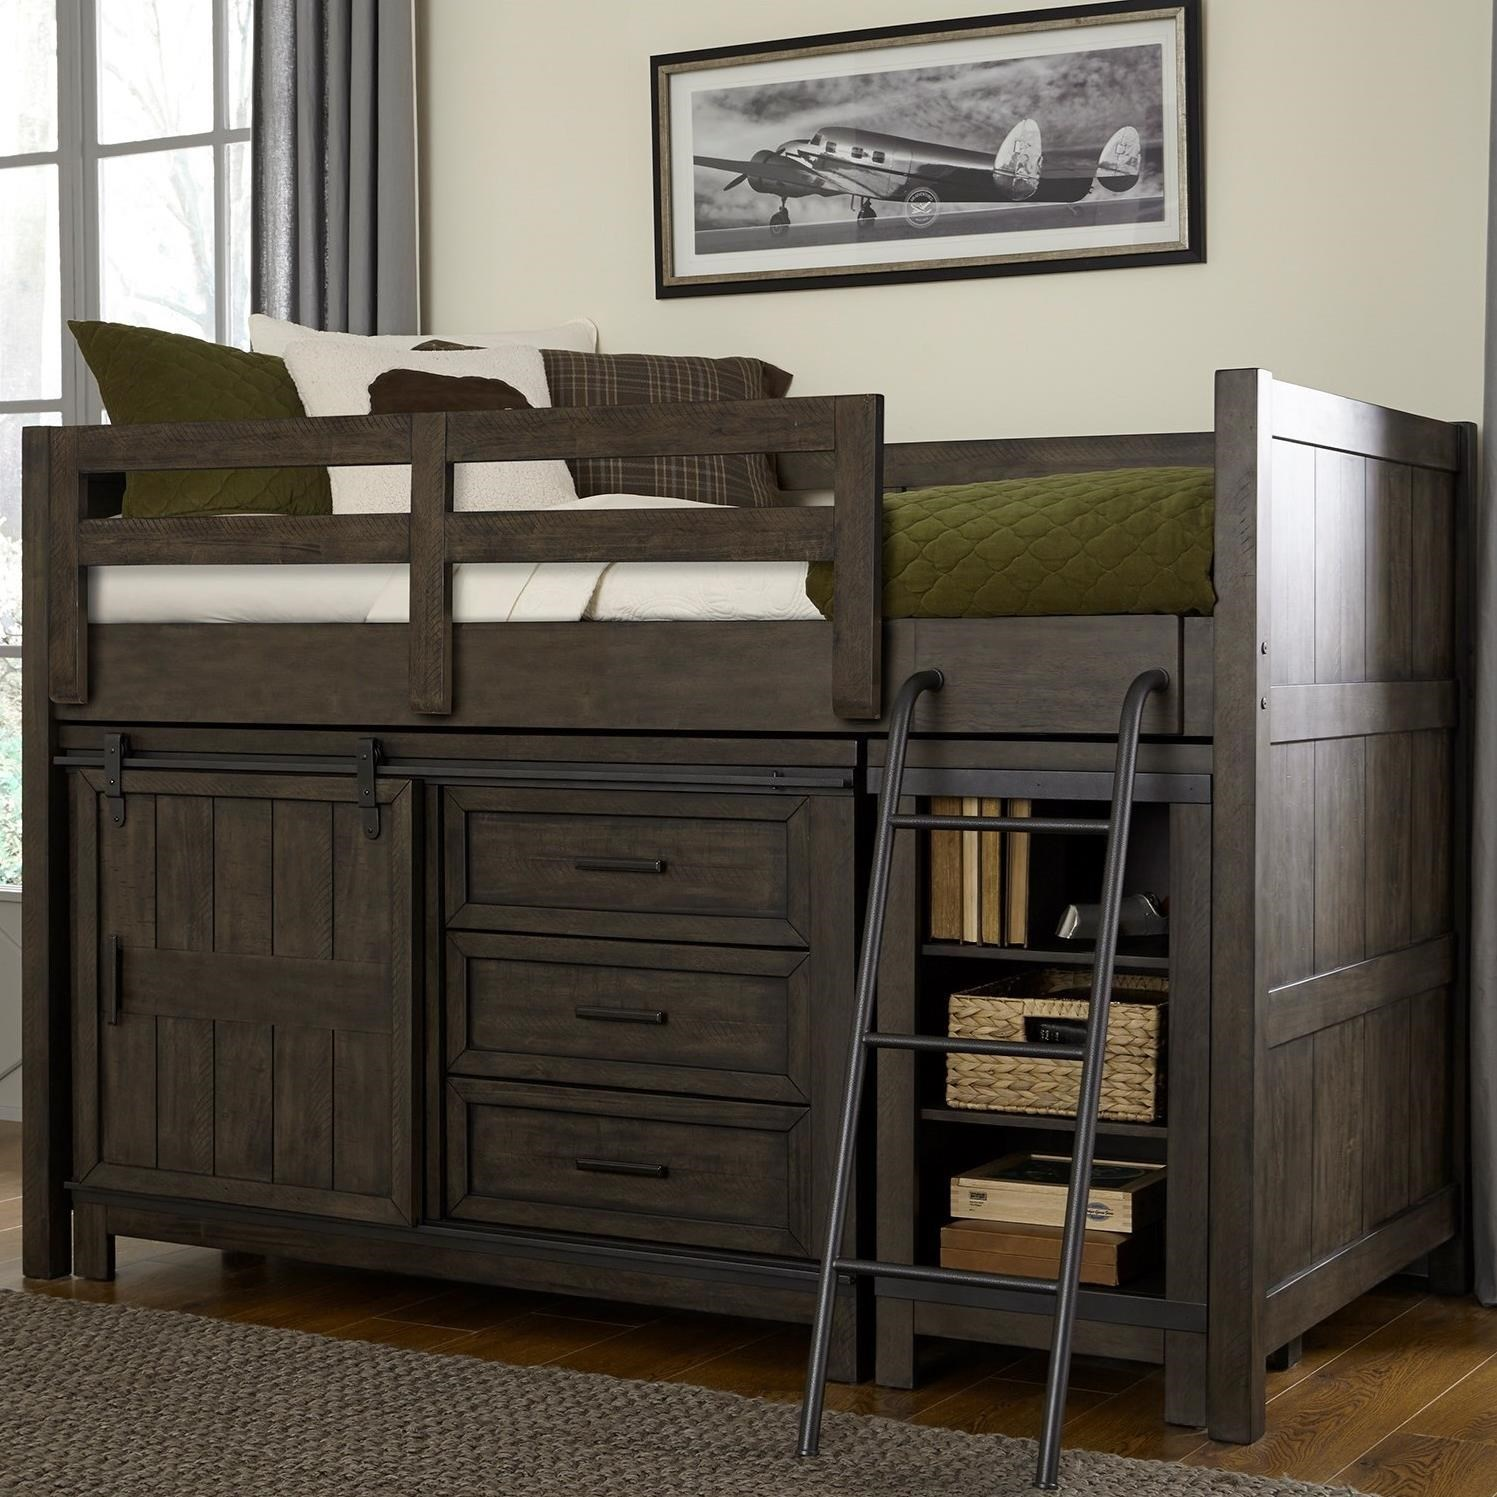 Liberty Furniture Thornwood Hills Rustic Twin Loft Bed With Dresser And Low Loft Bookcase Royal Furniture Loft Beds